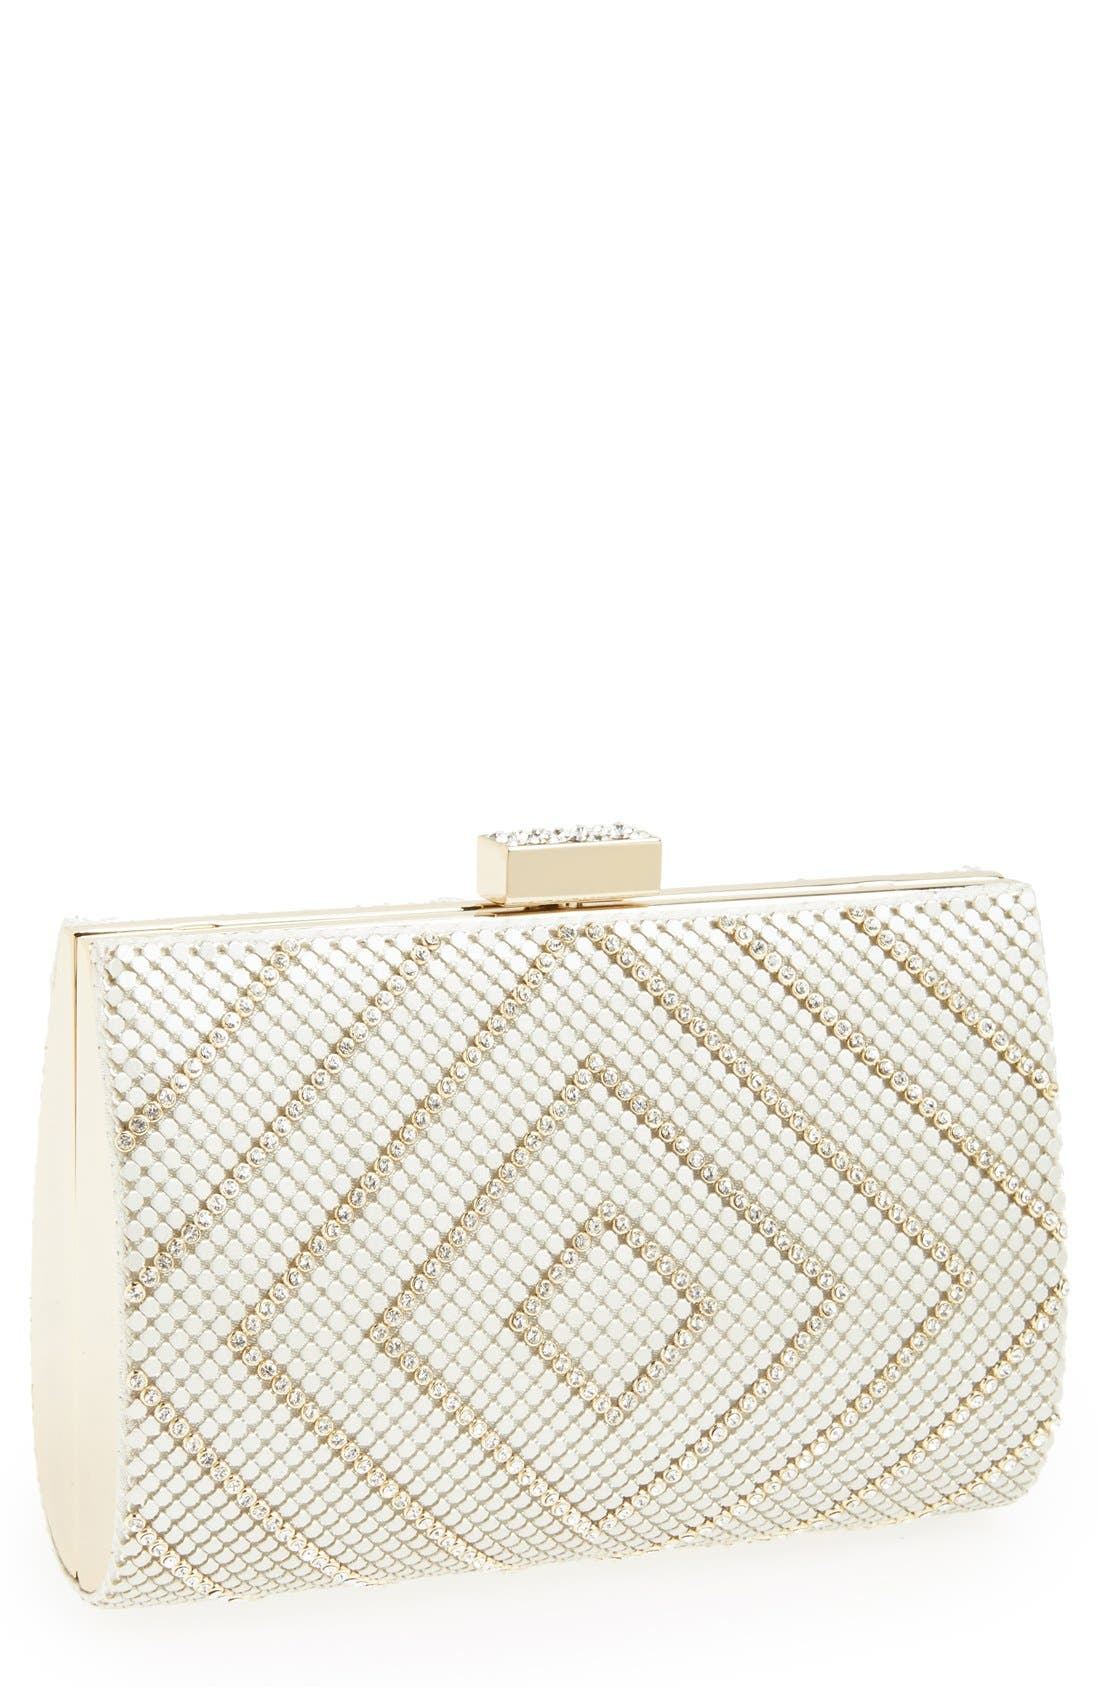 Alternate Image 1 Selected - Whiting & Davis 'Diamond Heights' Clutch